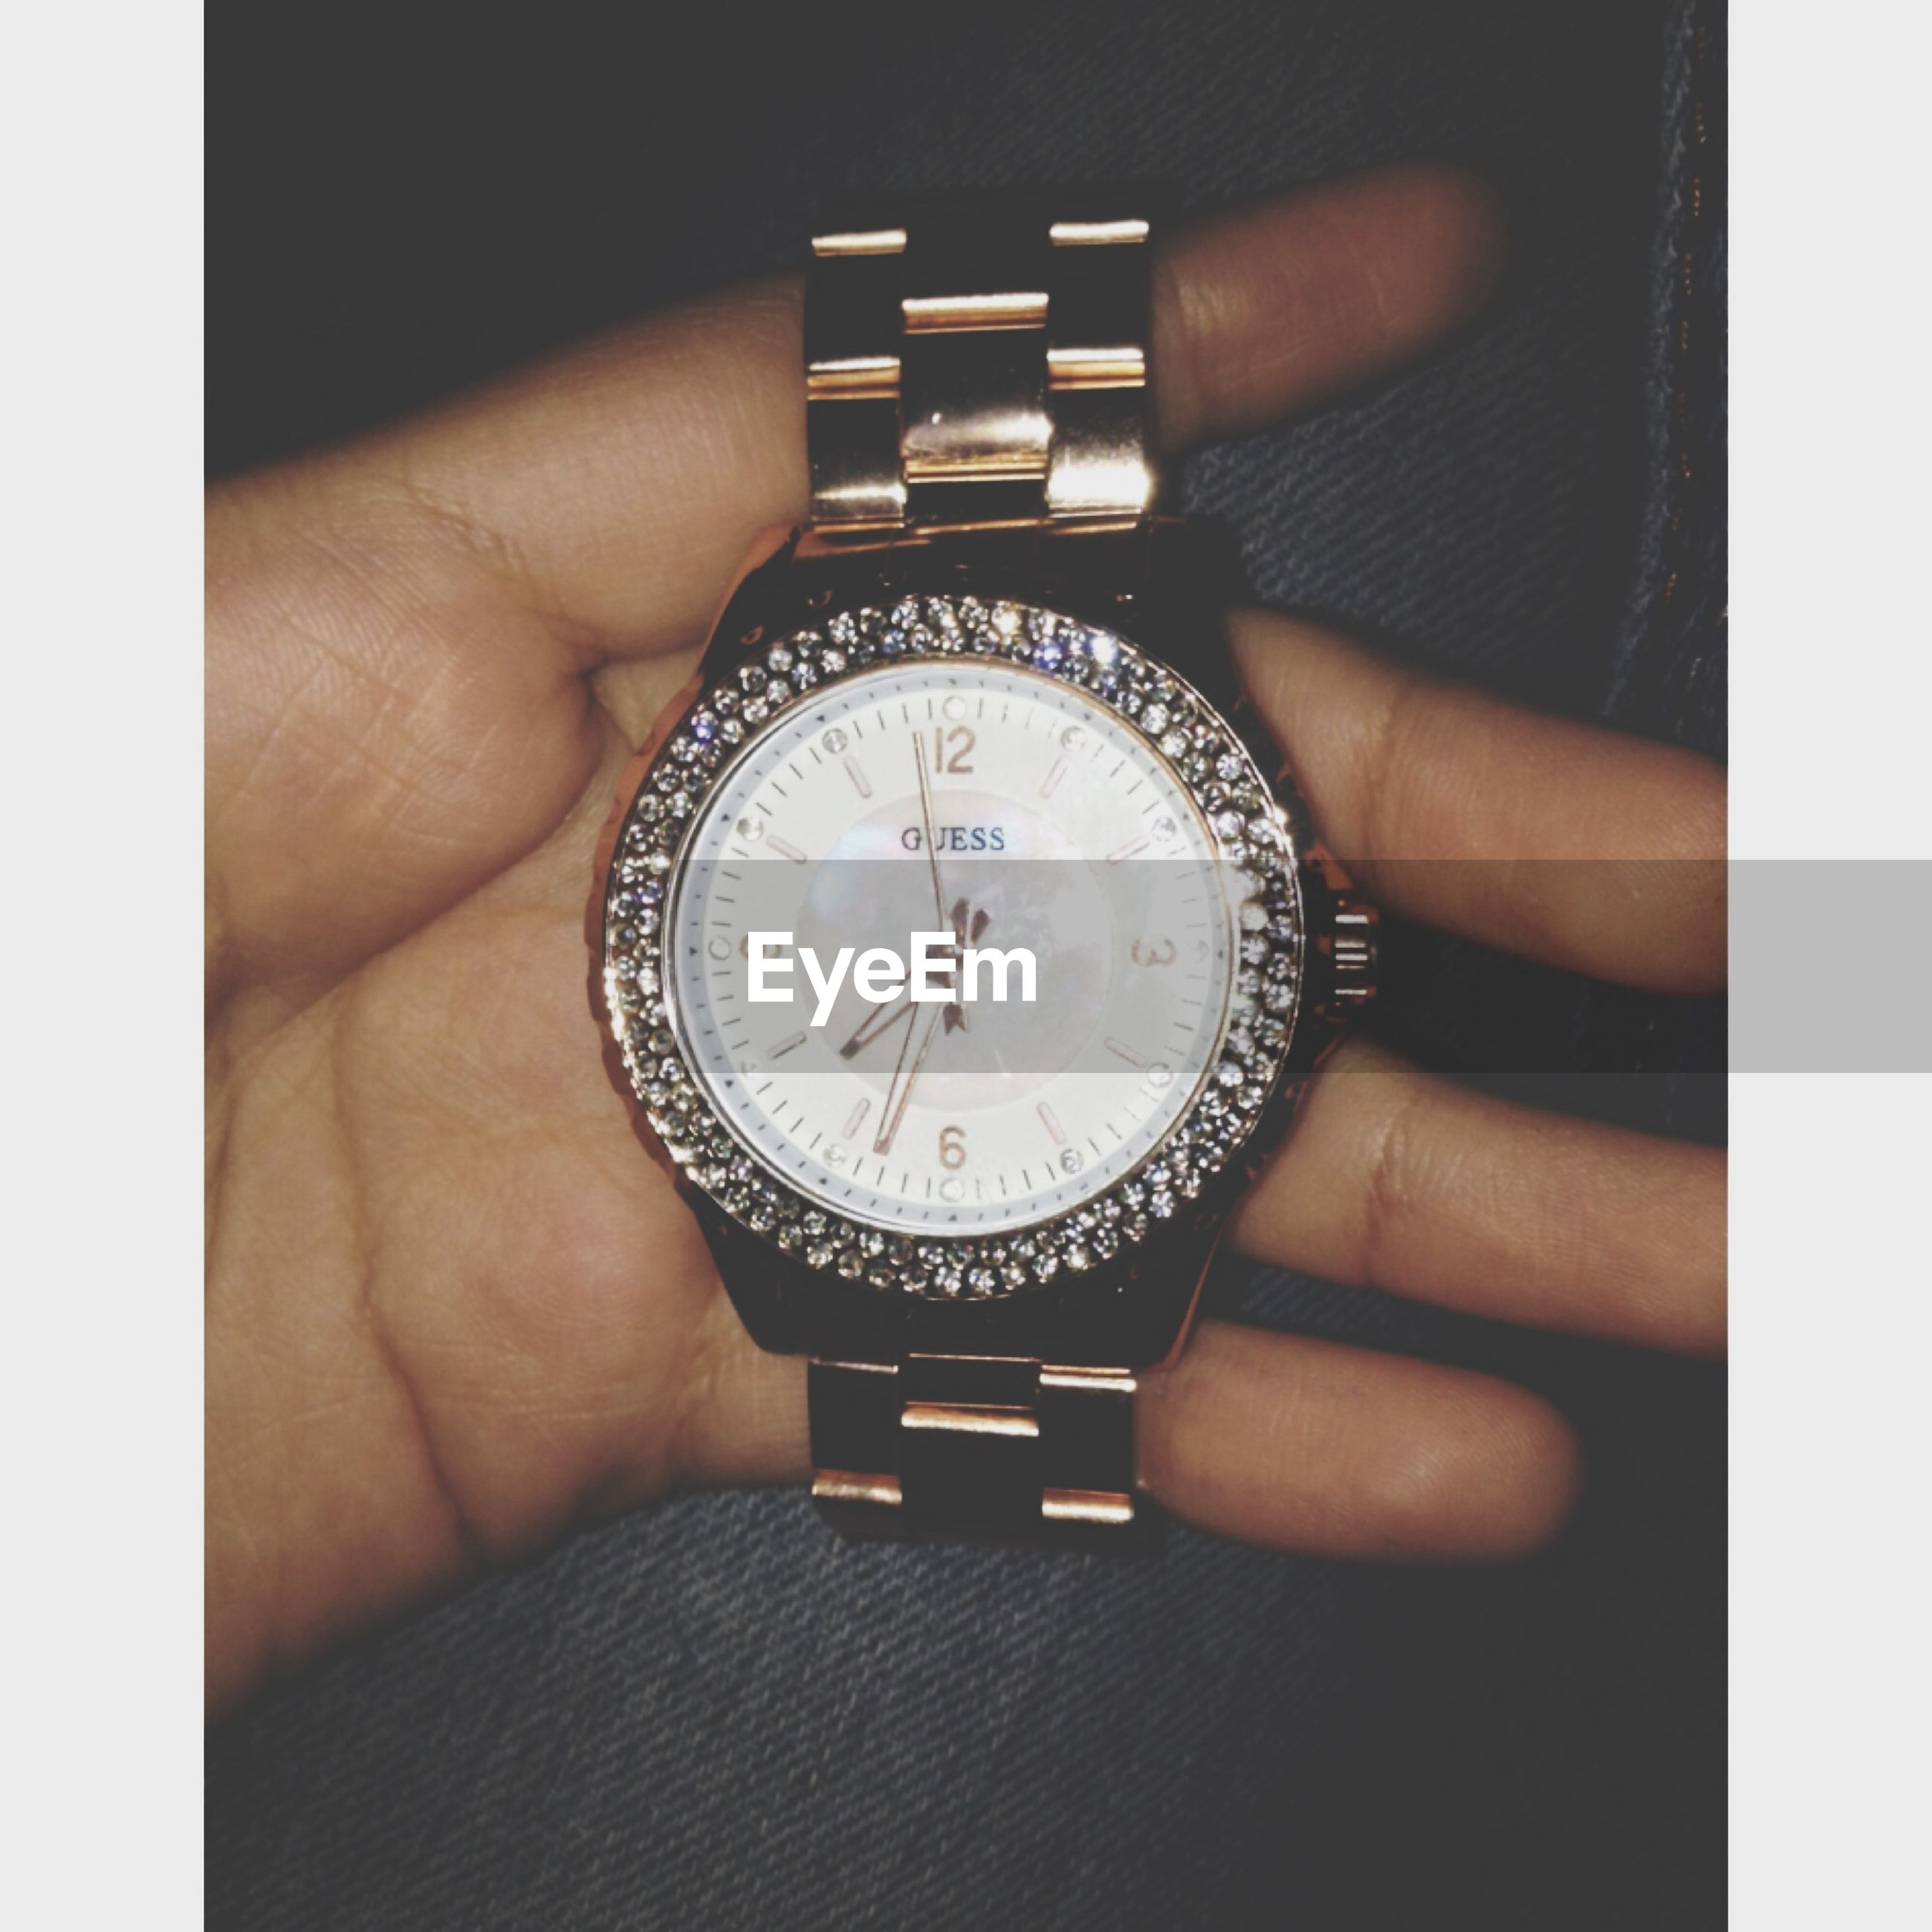 person, indoors, time, holding, part of, clock, close-up, human finger, communication, accuracy, cropped, transfer print, technology, auto post production filter, number, wristwatch, lifestyles